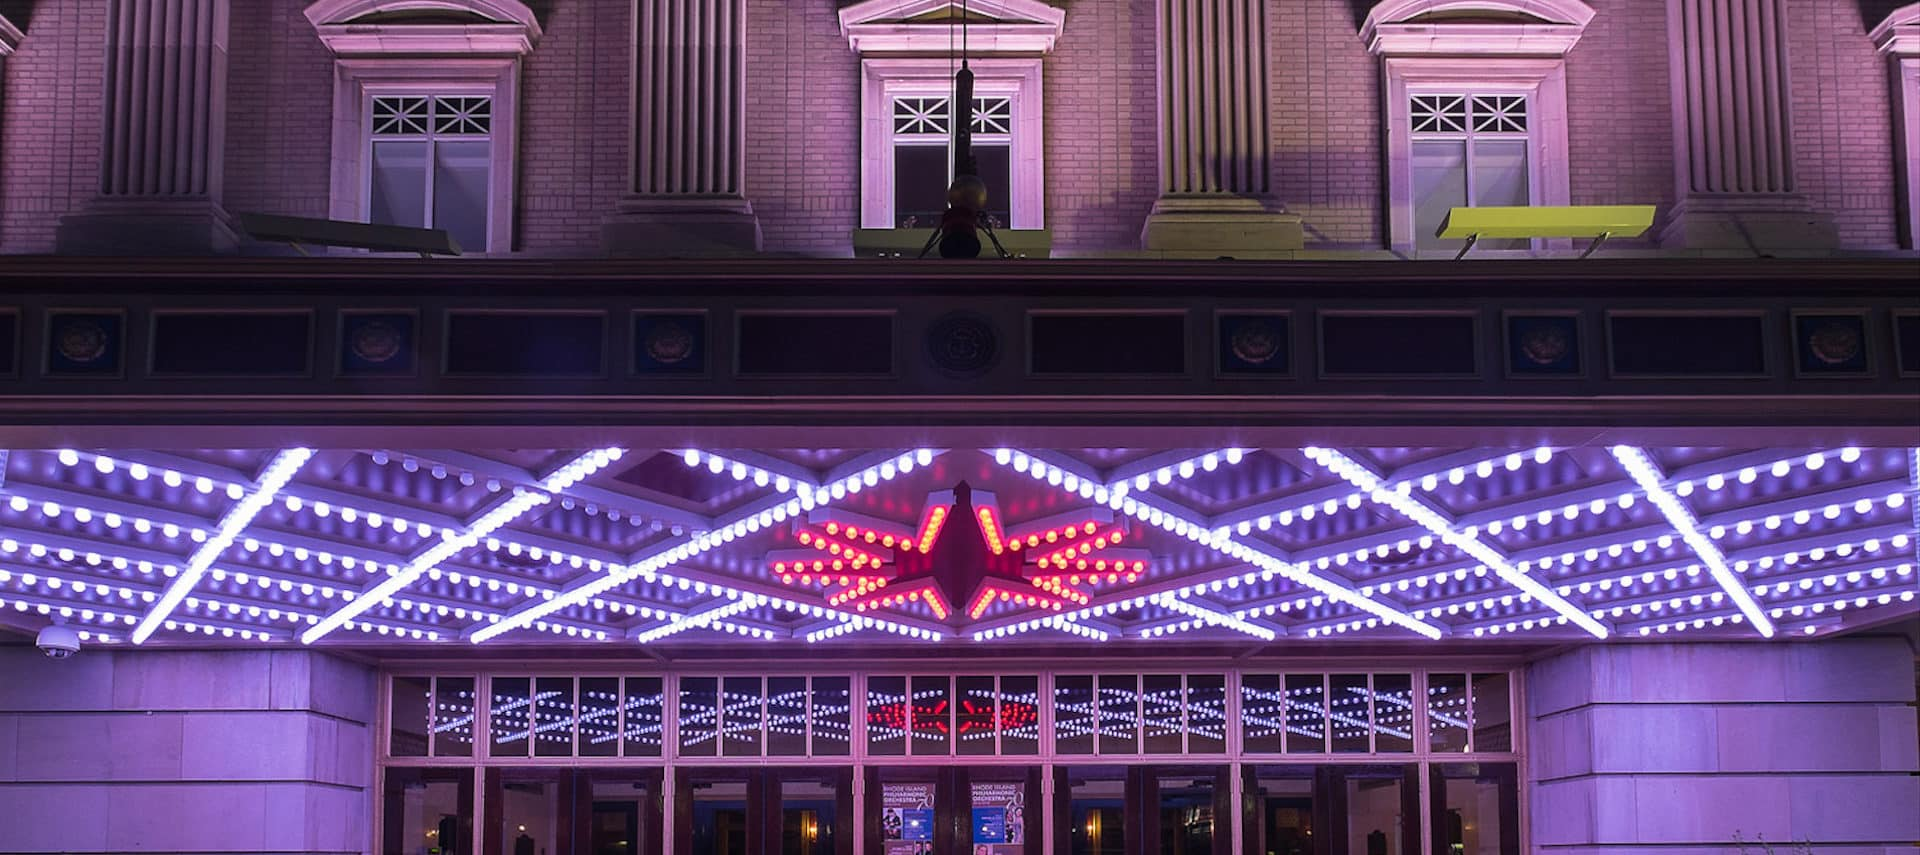 Bright neon white and red lighting of the Veterans Memorial Auditorium exterior .